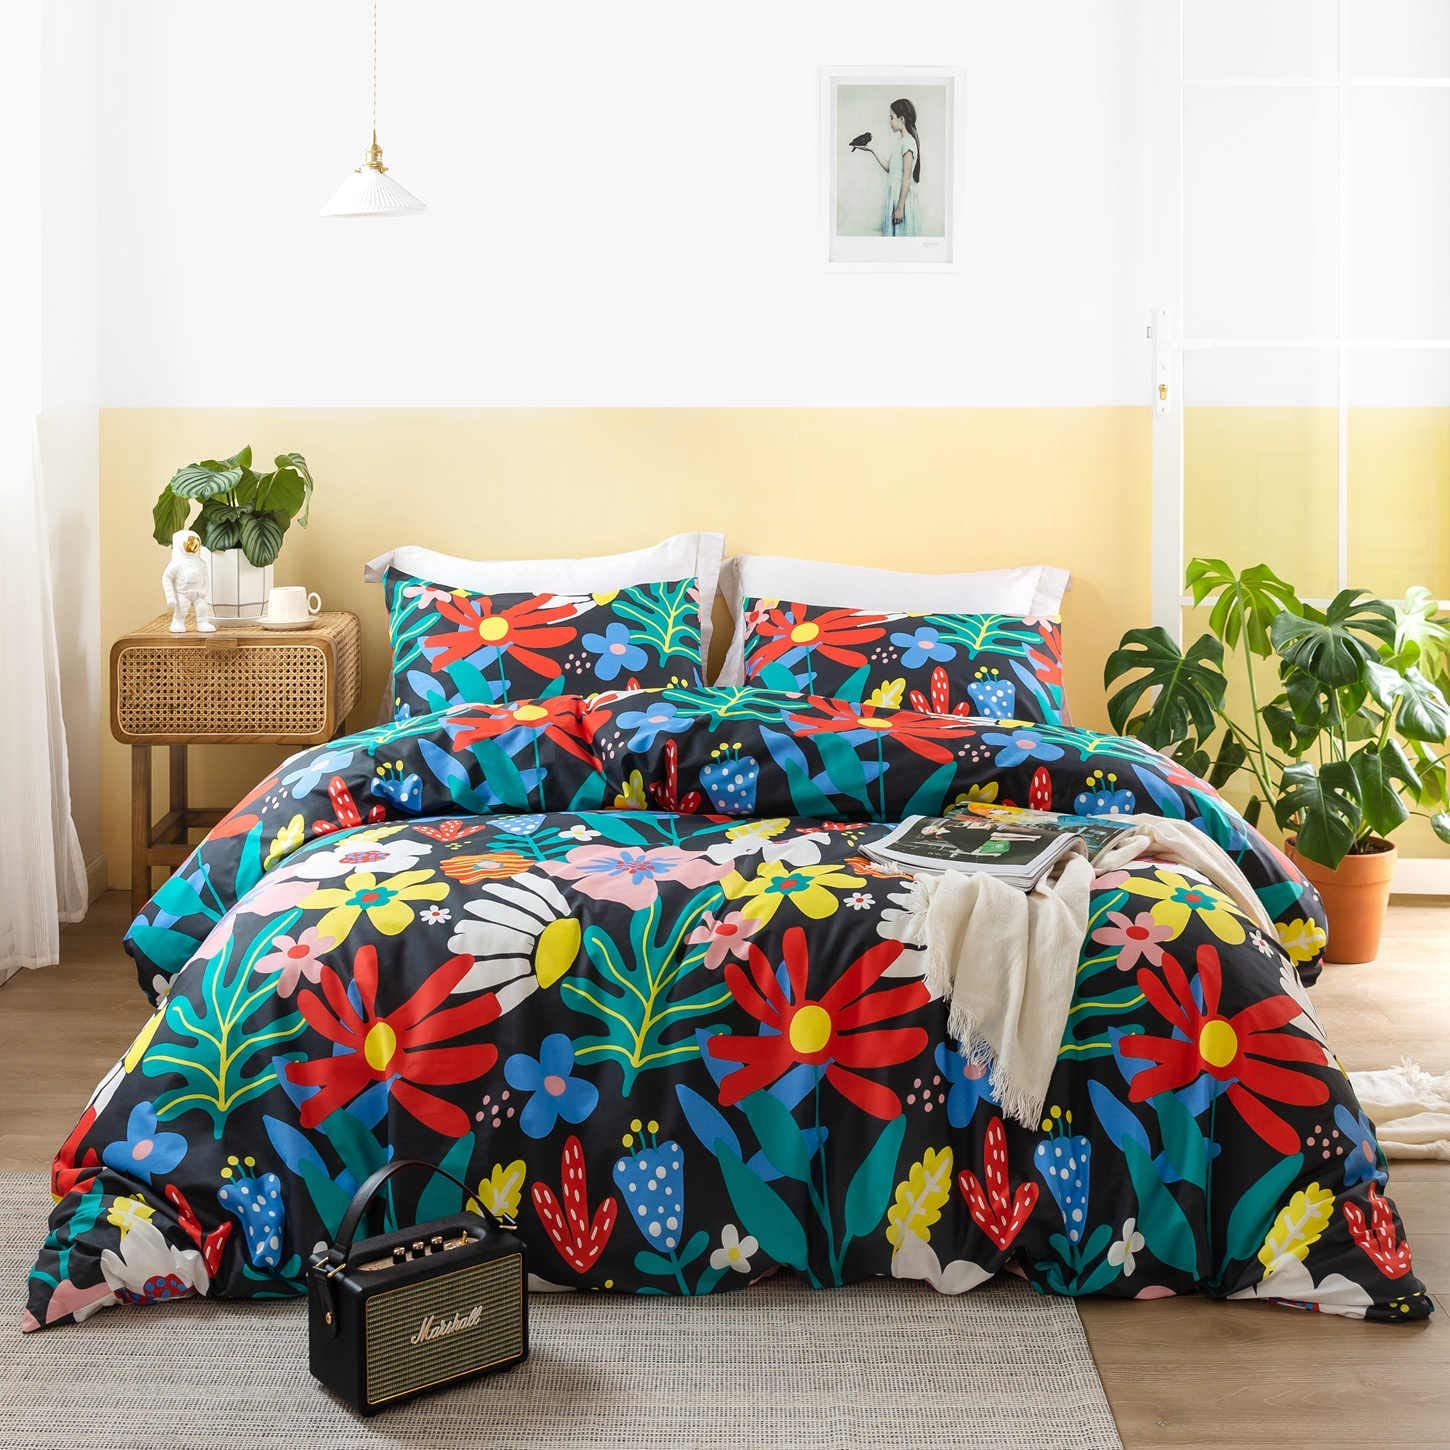 SUSYBAO 3 Pieces Duvet Cover Set 100% Cotton Queen Size Multi-Colored Sunflowers Print Bedding Set